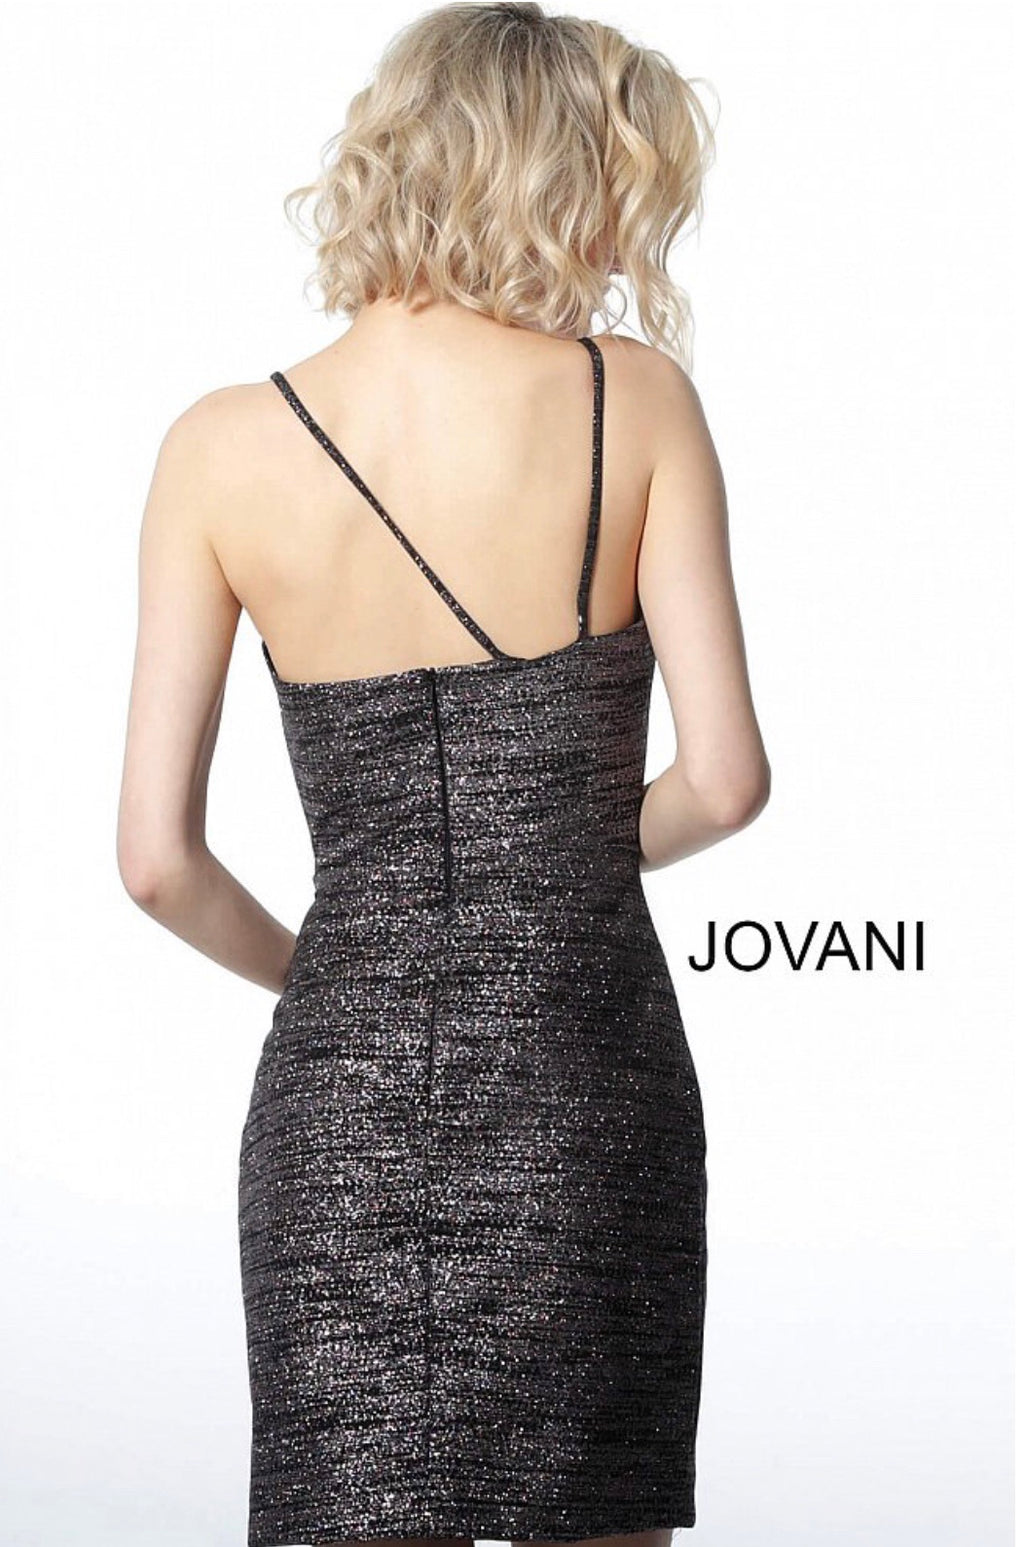 JOVANI 1128 Front Cut-Out Cocktail Dress - CYC Boutique